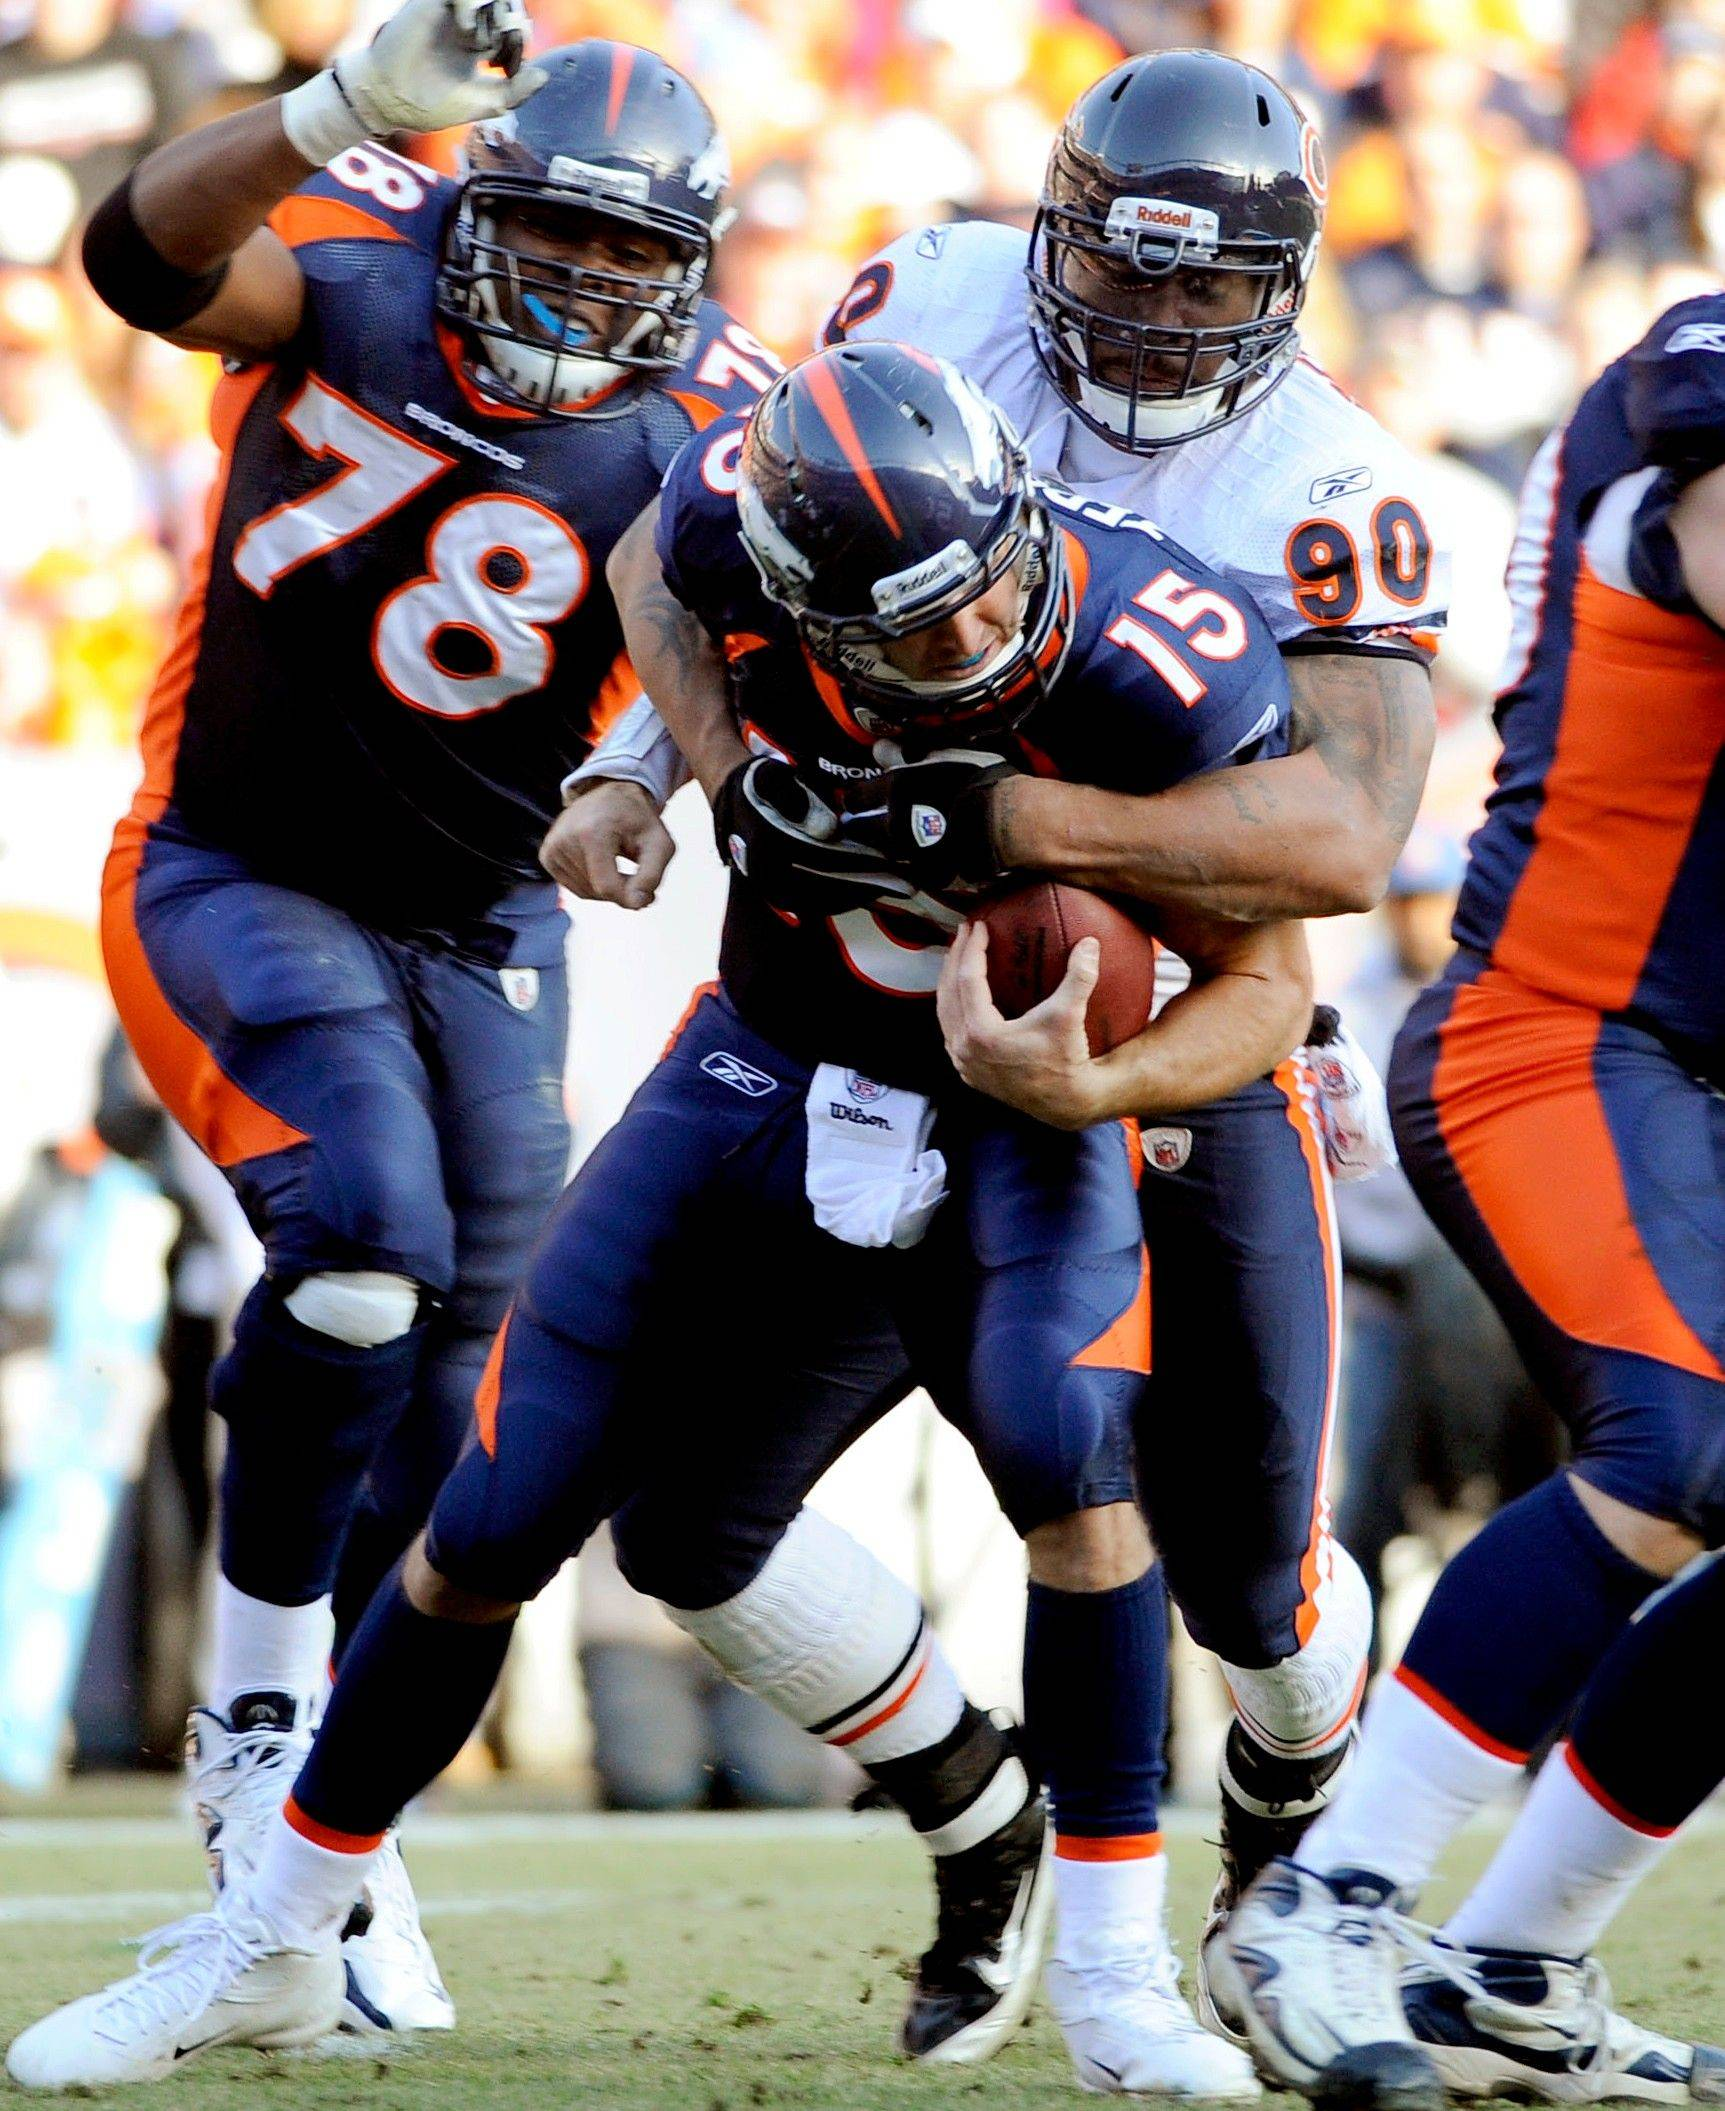 Denver Broncos quarterback Tim Tebow (15) is sacked by Chicago Bears defensive end Julius Peppers (90) during the second quarter.